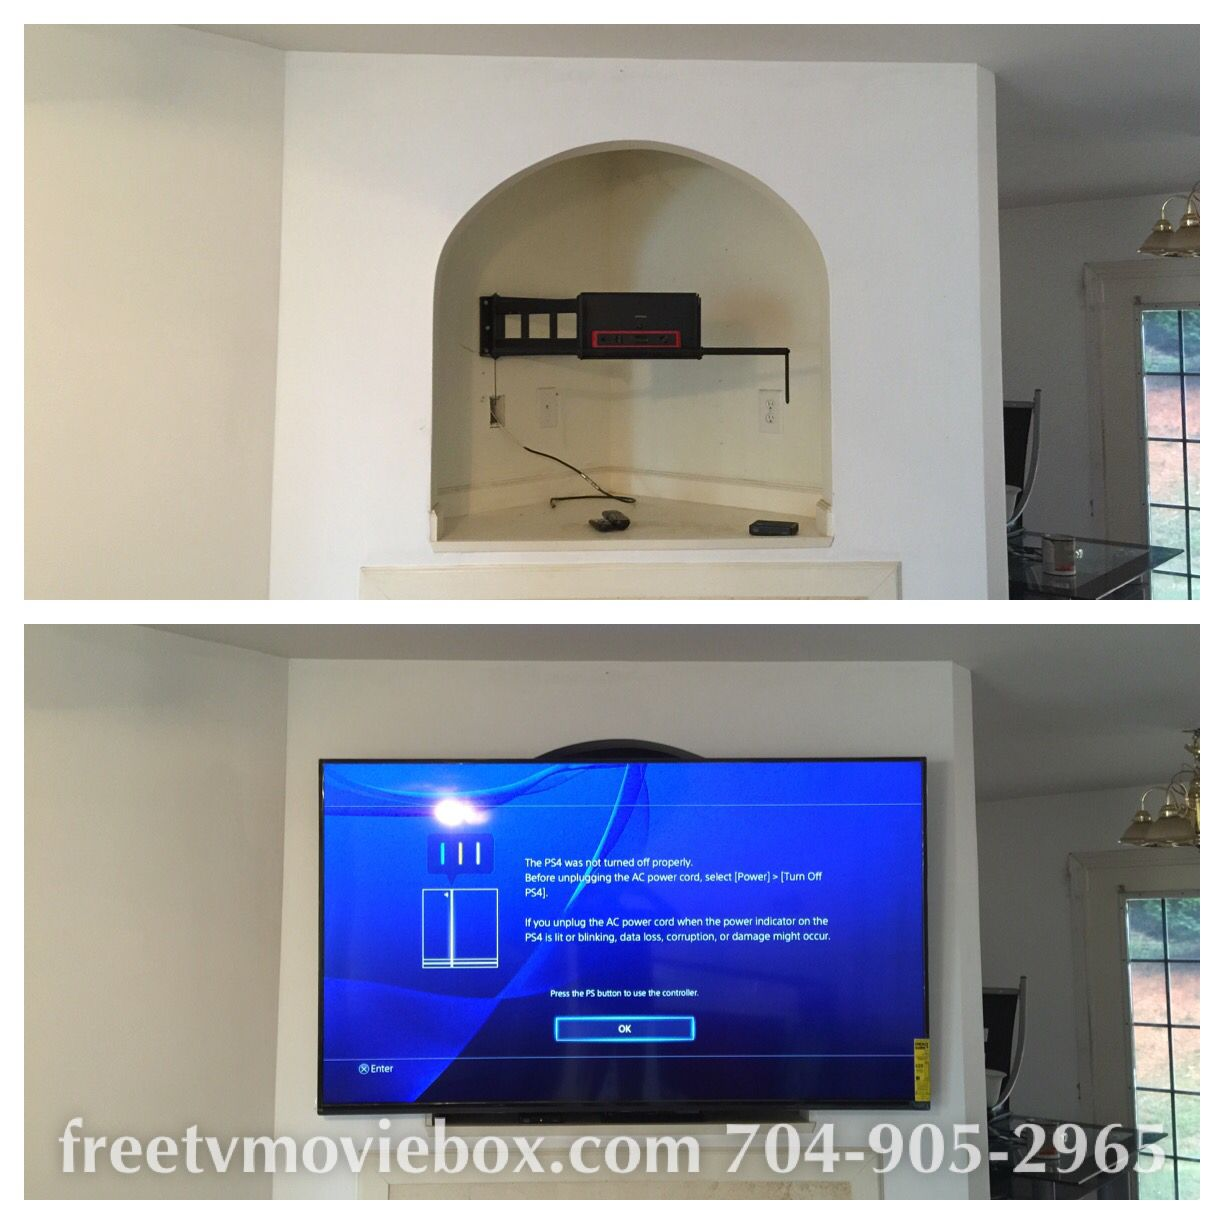 Free Tv Wall Mount With Every Installation Prices 99 And Up Home Theater Wiring Cable Box Charlotte Tvmounting Tvinstallation Hometheater Tvwallmount Tvstand